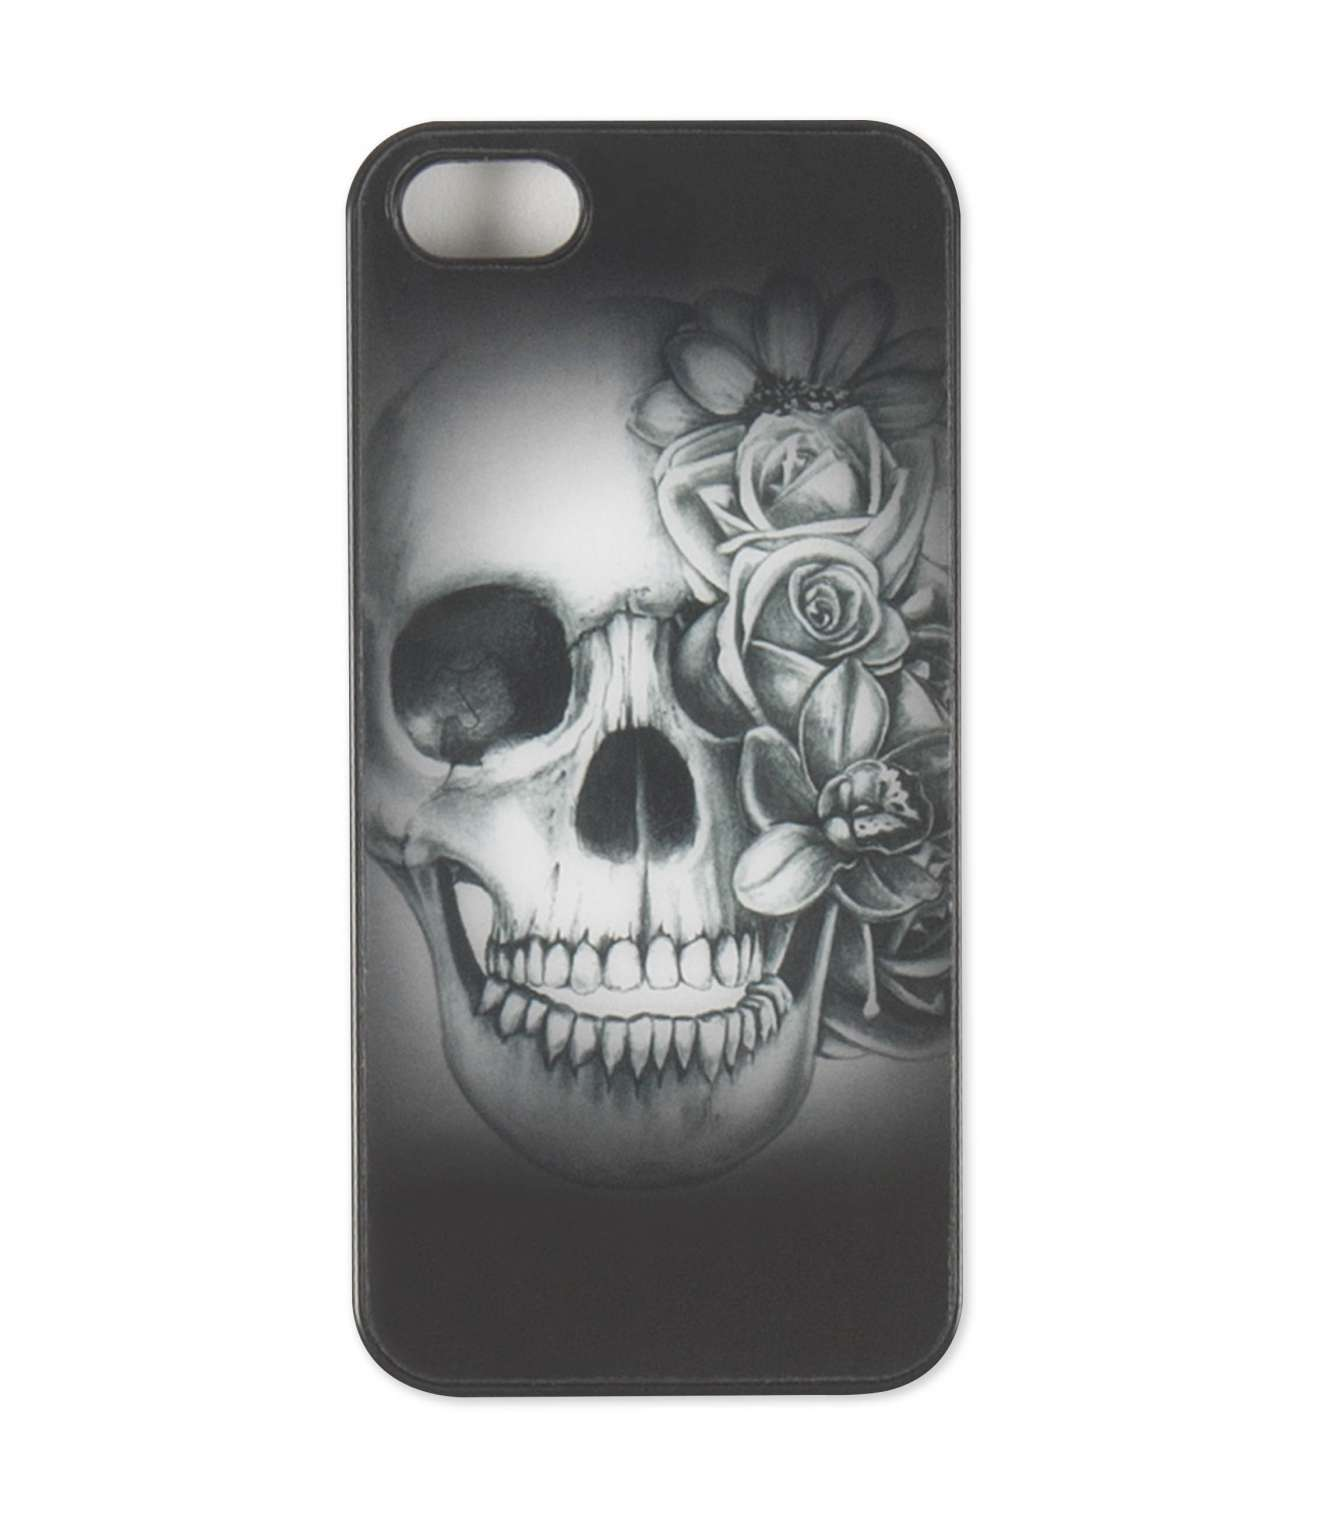 METAL MULISHA BITTERSWEET IPHONE CASE